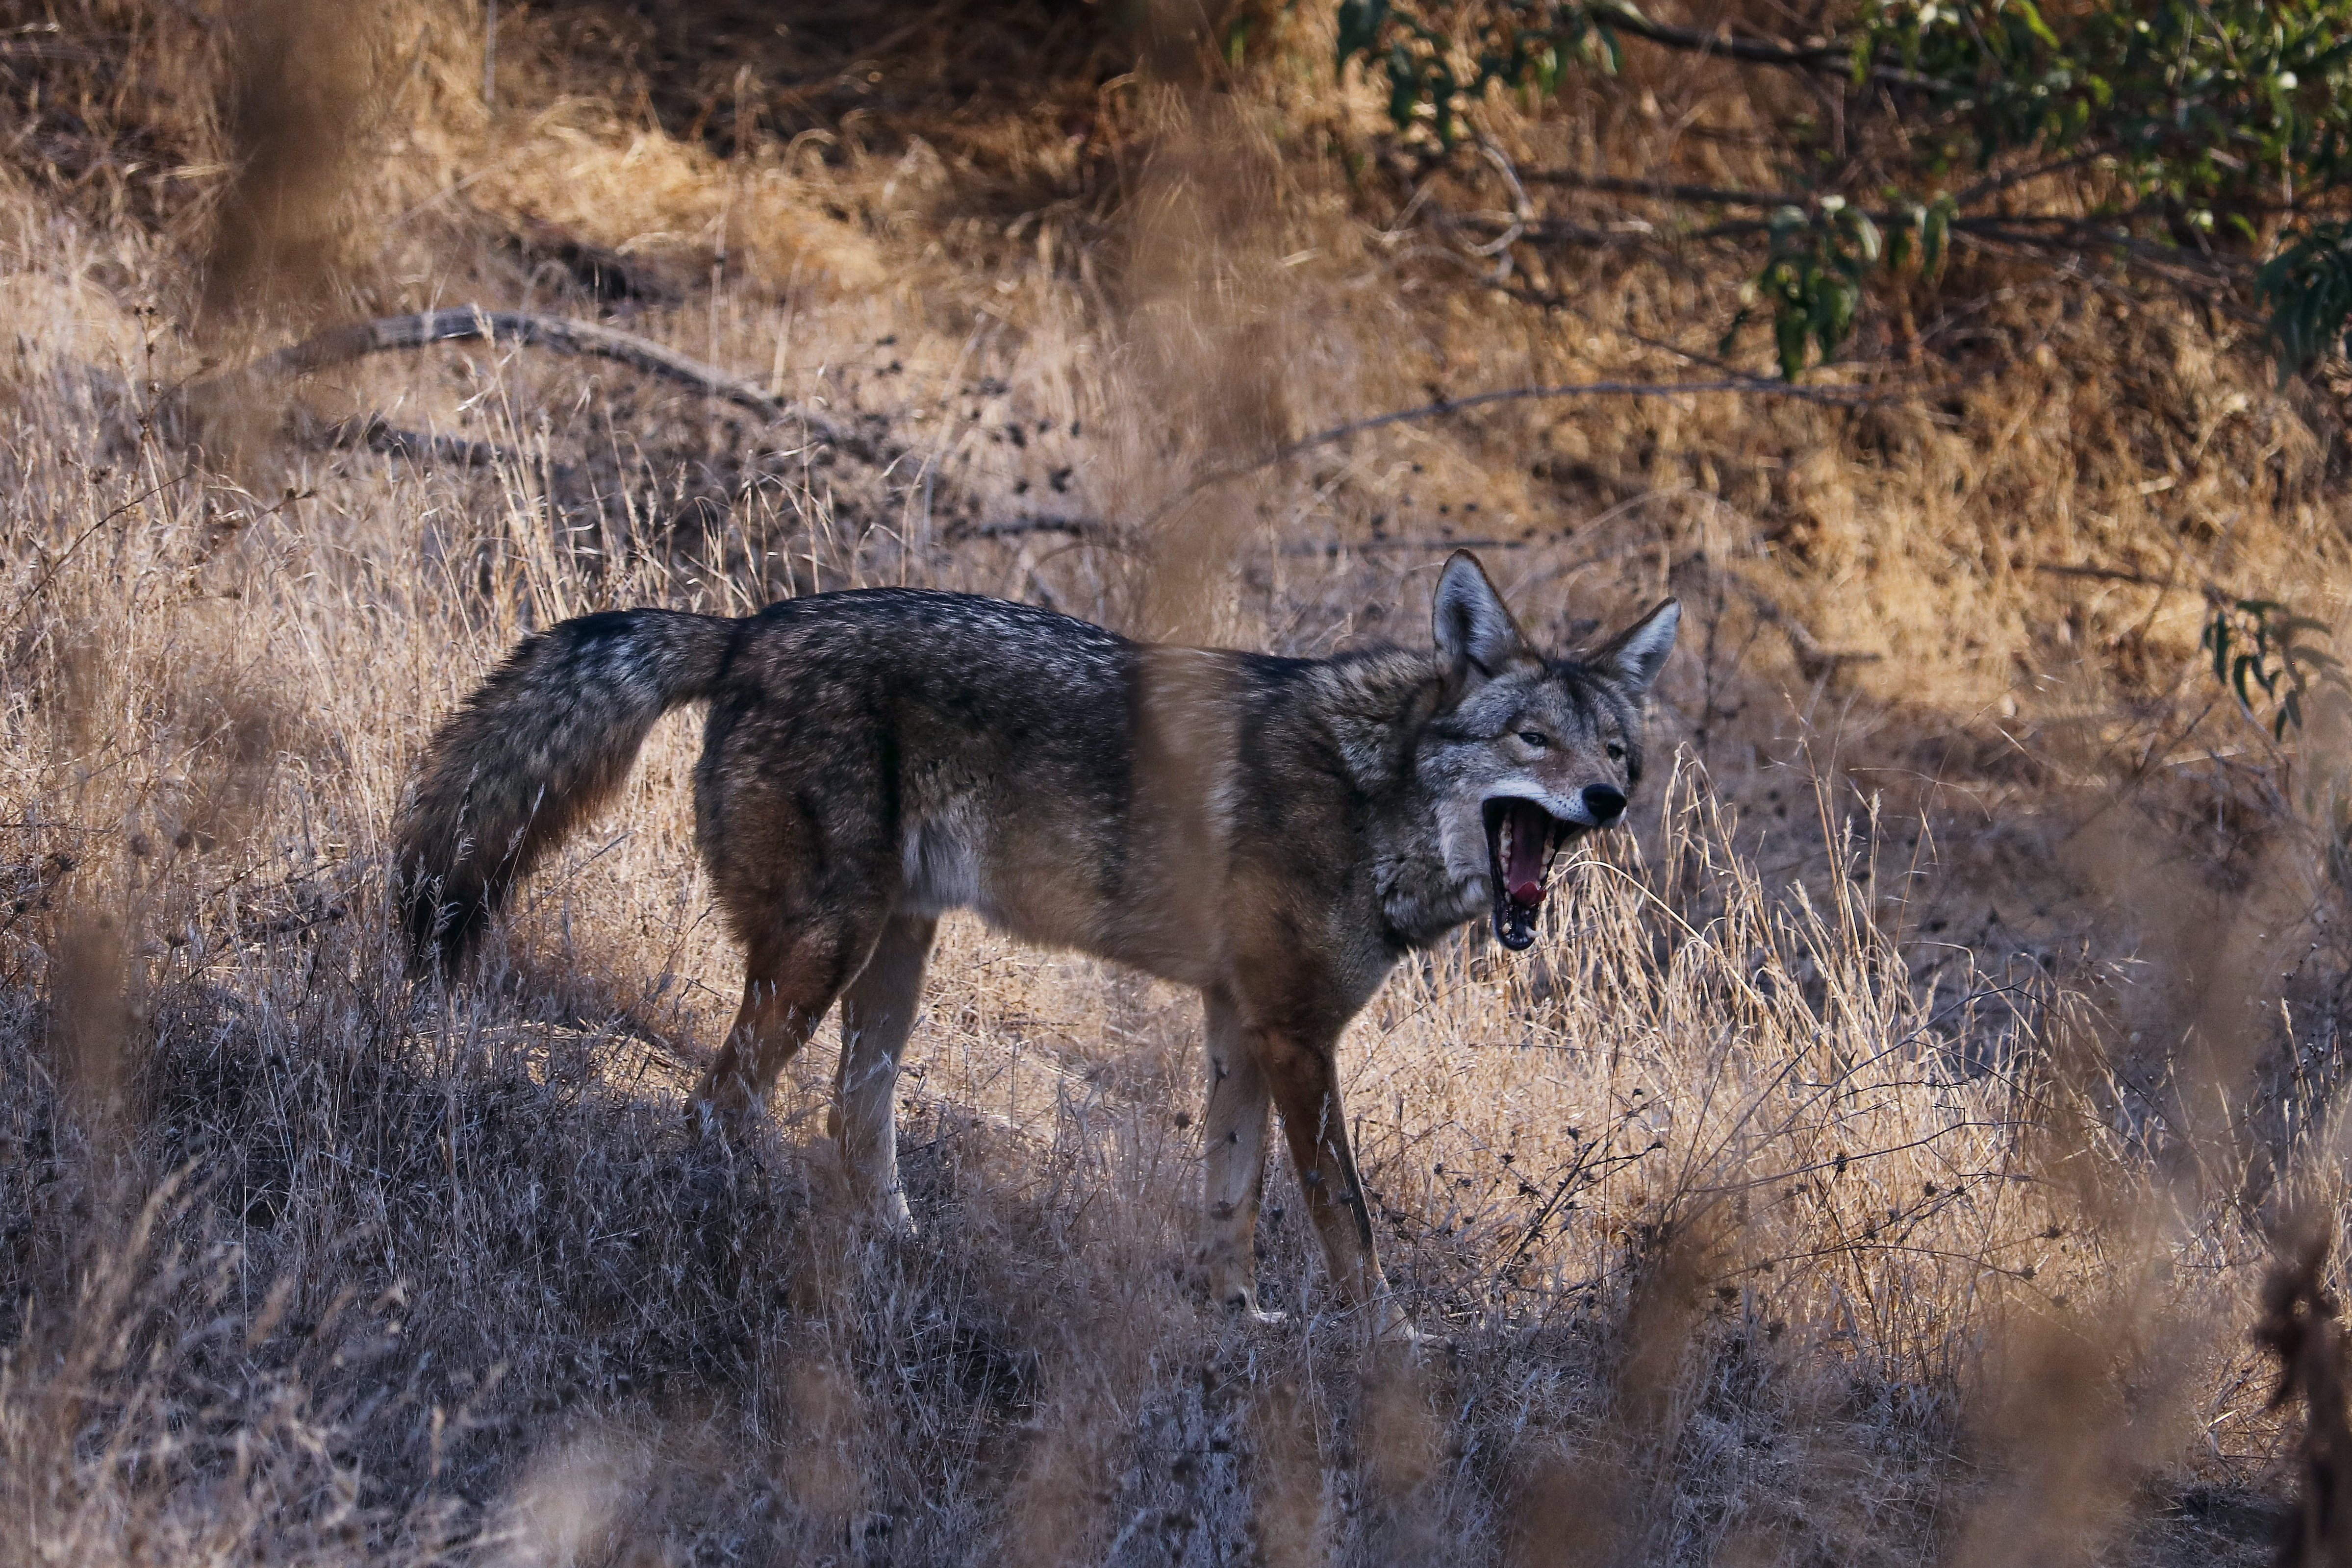 Coyote open mouth